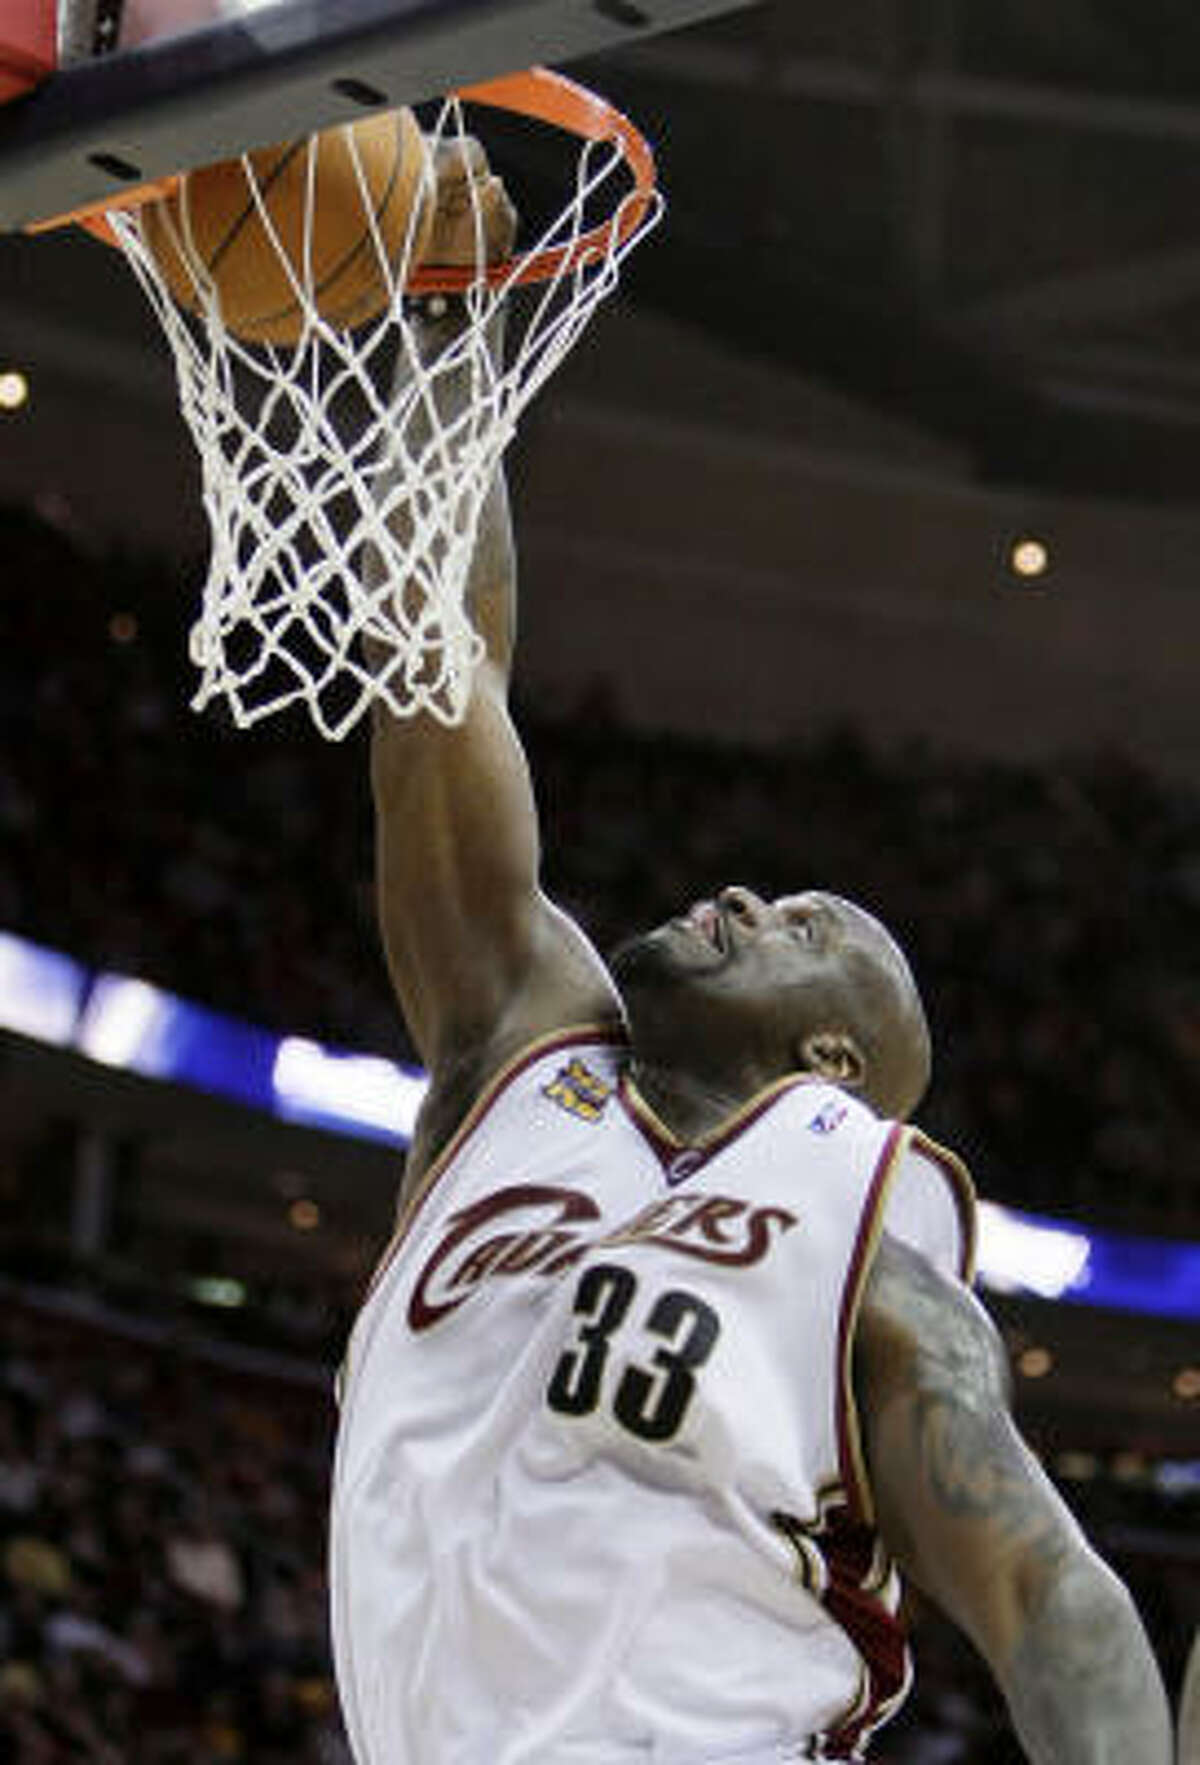 Shaquille O'Neal, Cleveland Cavaliers basketball star: